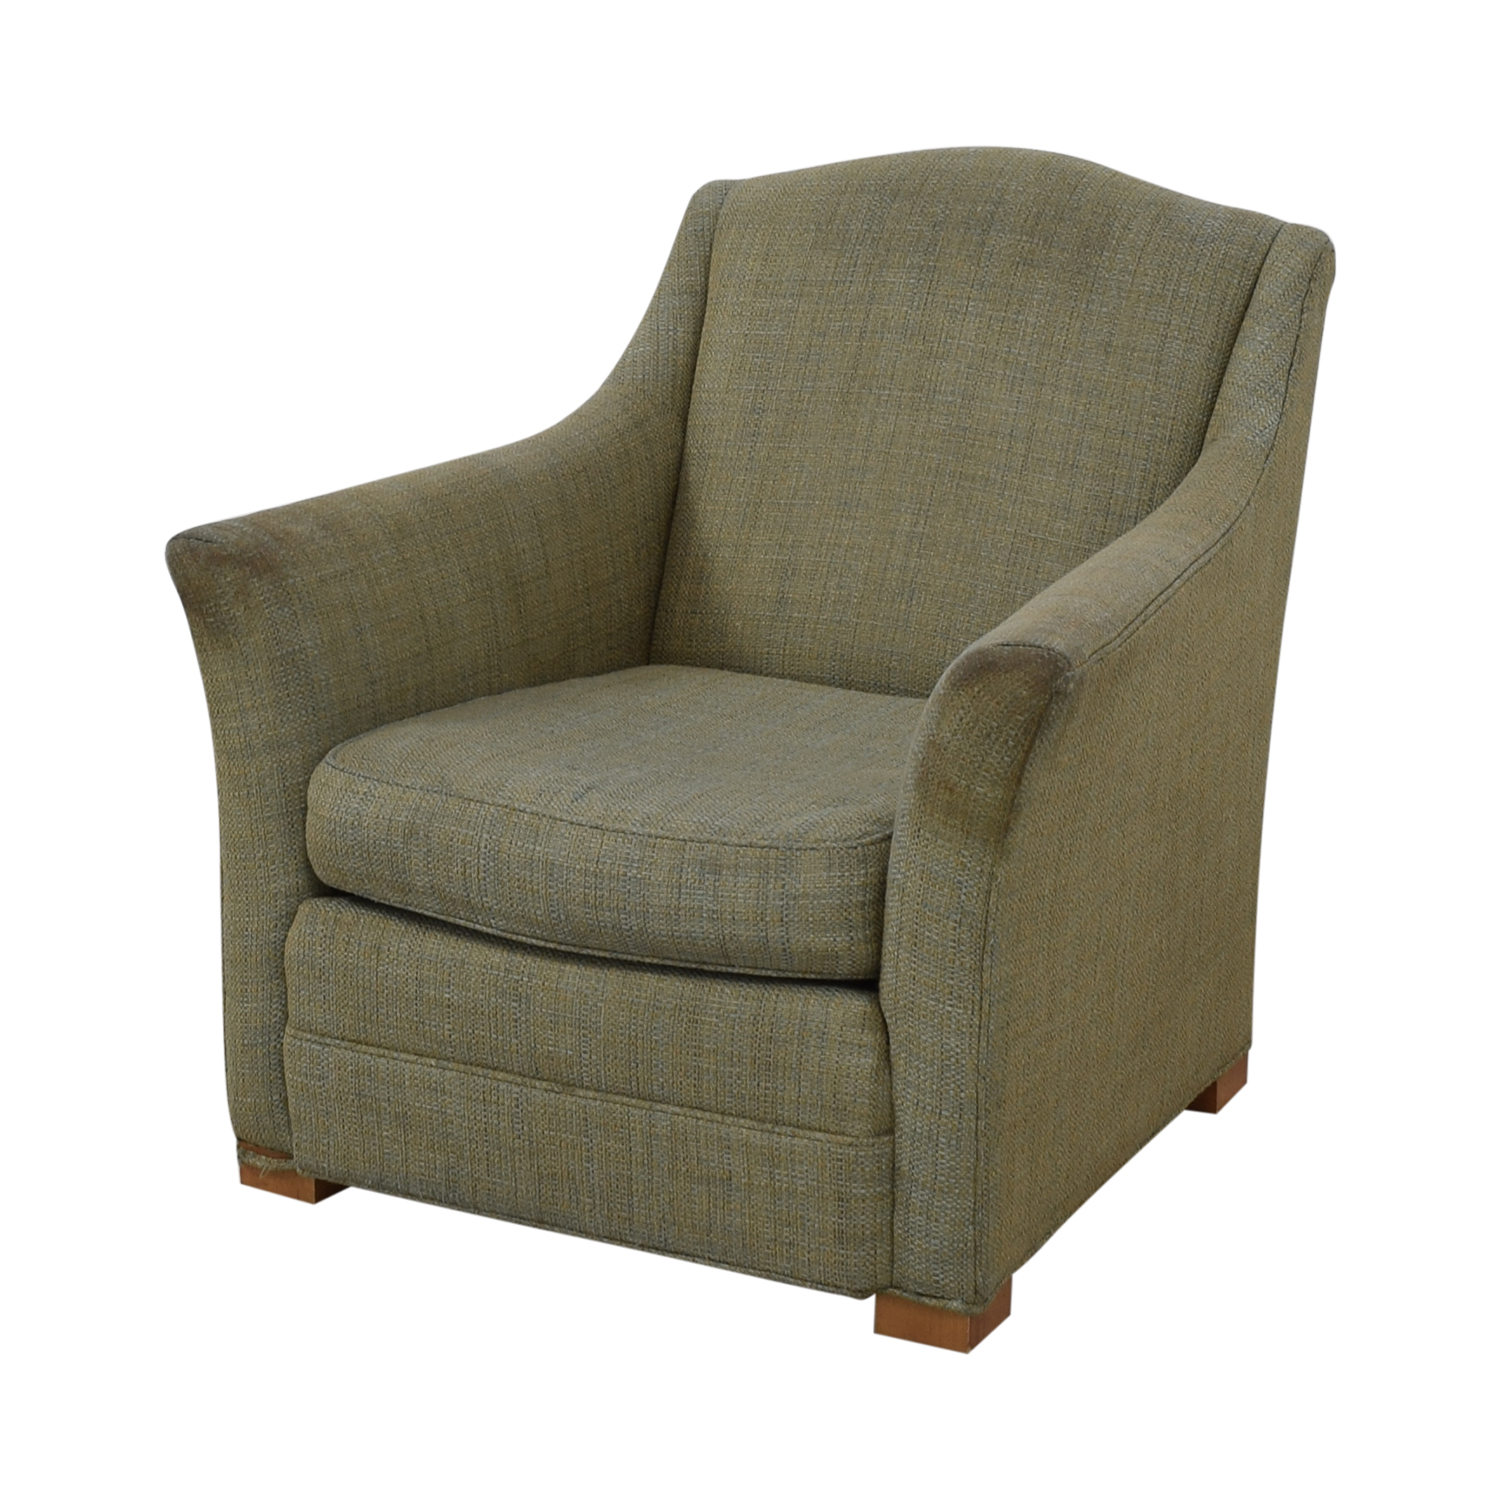 shop Mitchell Gold + Bob Williams Mitchell Gold + Bob Williams Armchair online